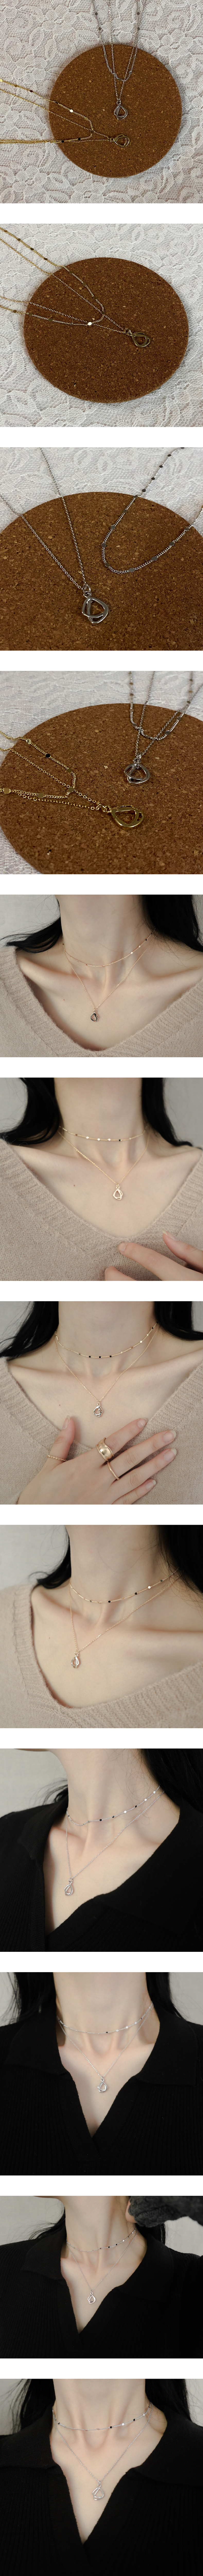 1042 overlap pendant layered necklace